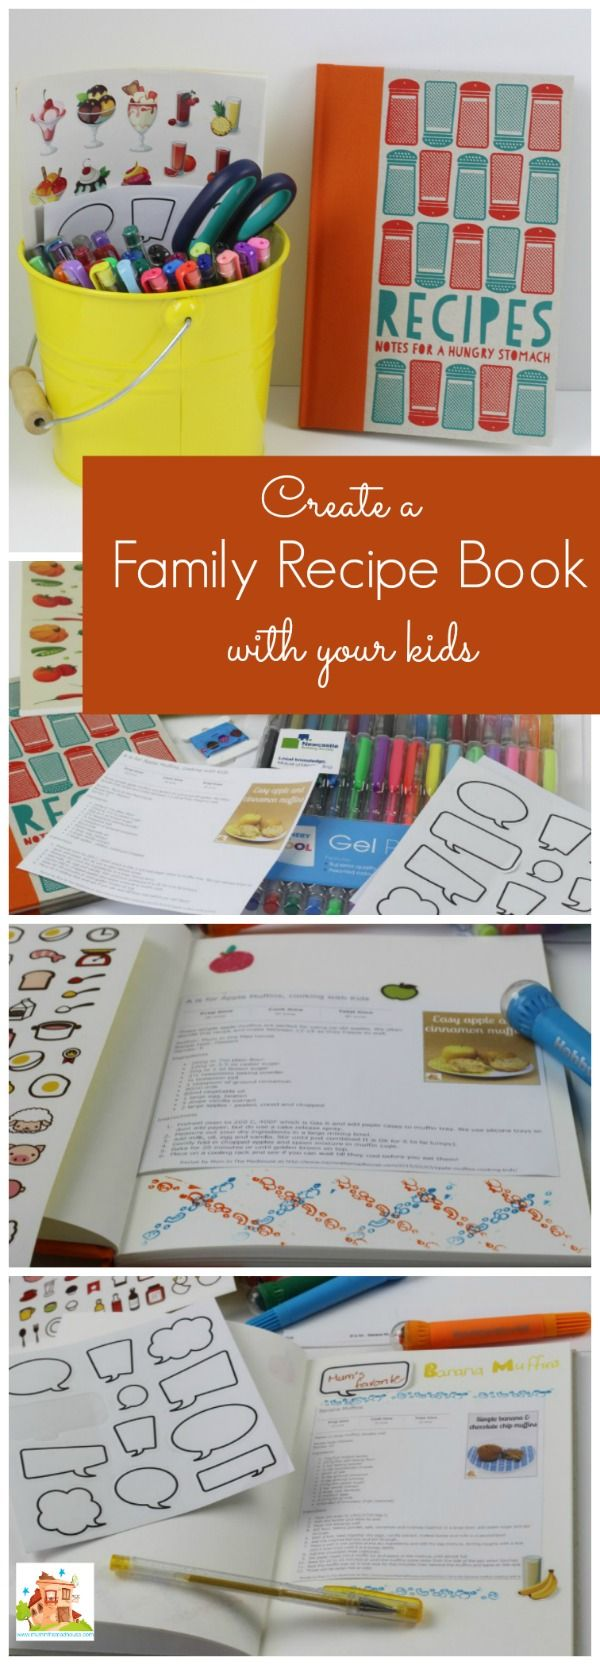 Tips for creating a family recipe book with the kids. As a family who looks to cook together, we decided to make a family cookbook to record all our recipes for the years to come and add new ones to.